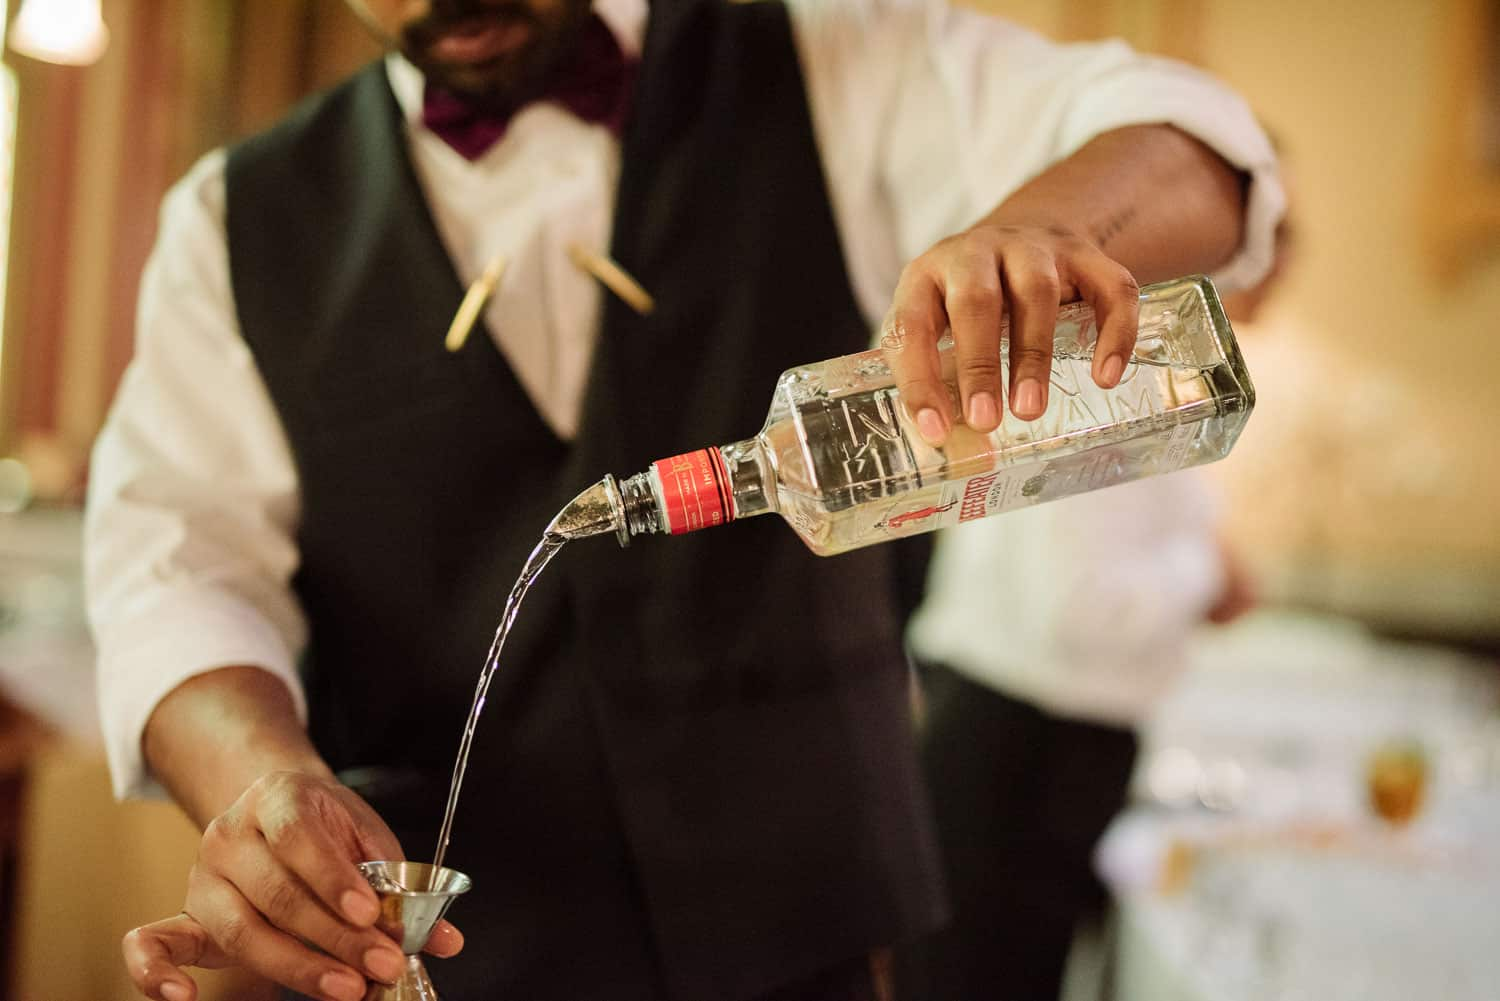 Beefeater Gin being poured